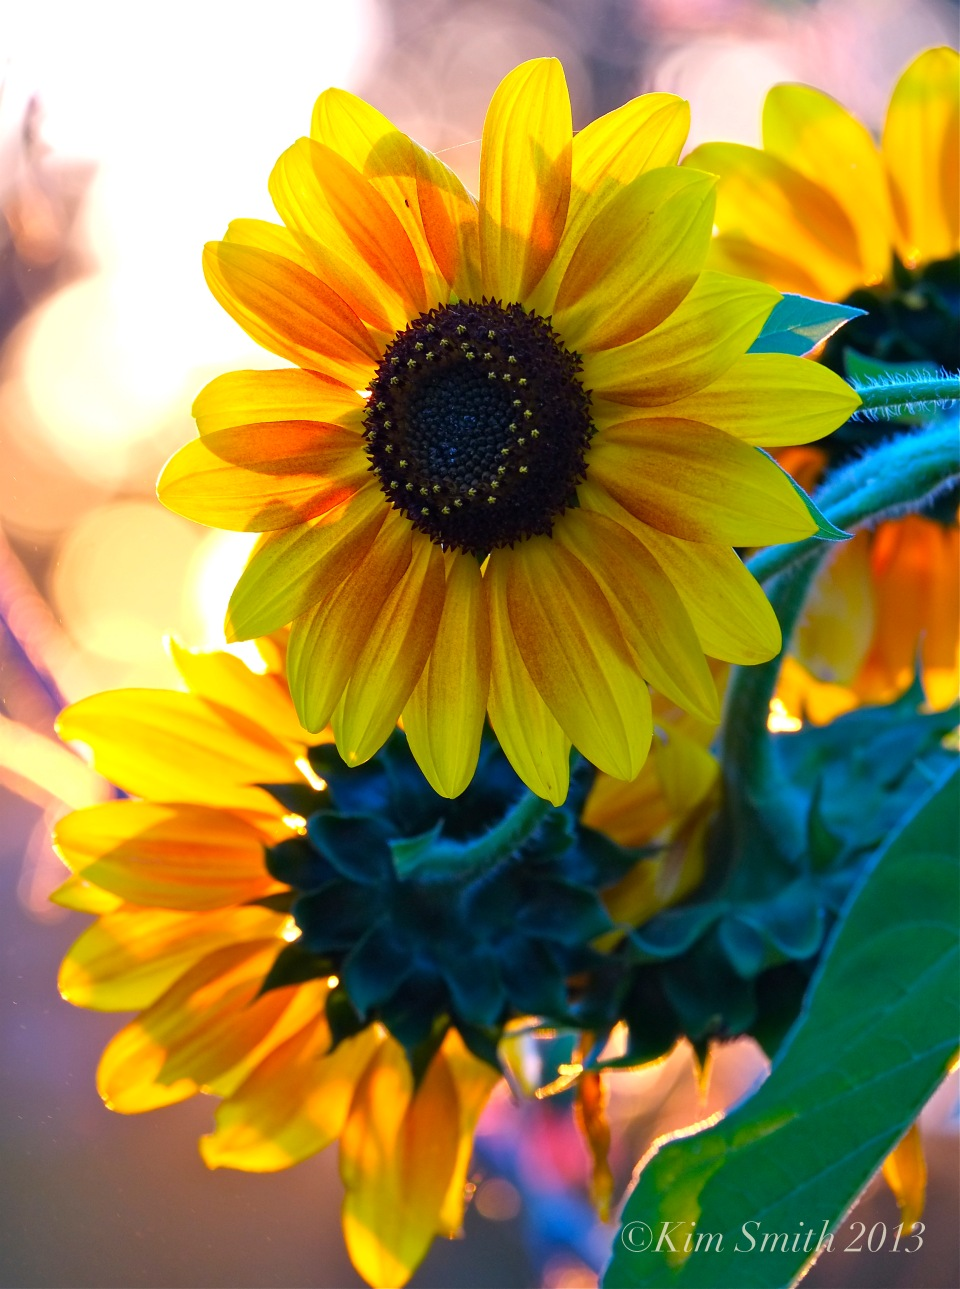 Sunflowers ©Kim Smith 2013